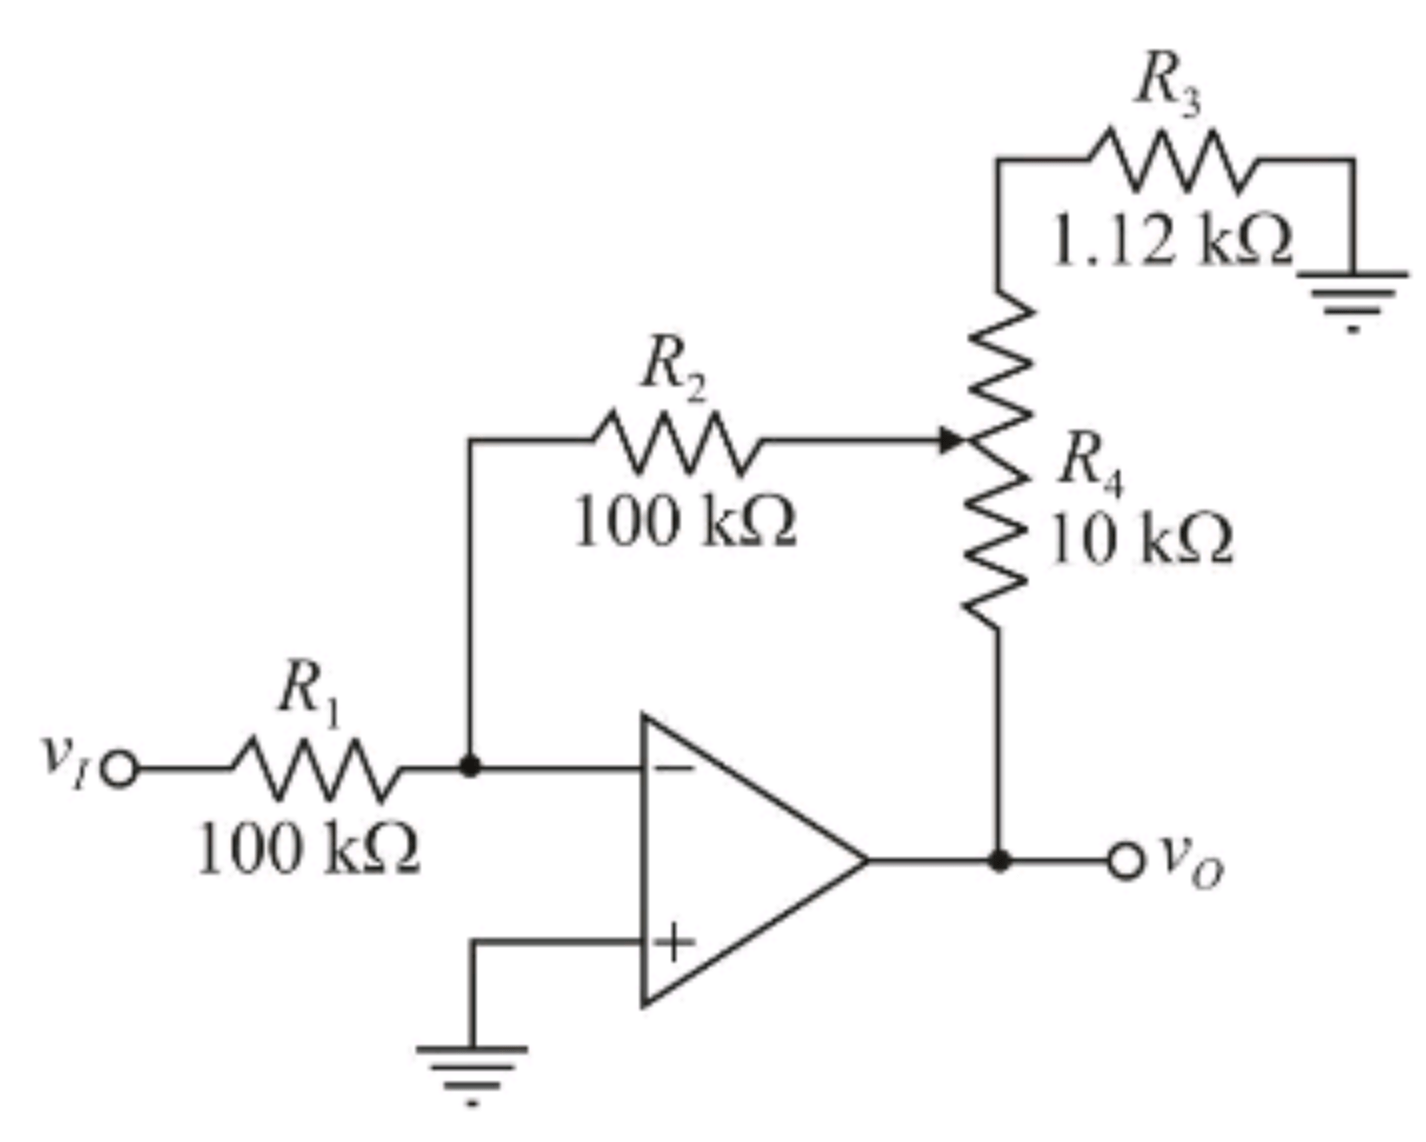 op amp questions on operational amplifiers electrical engineering